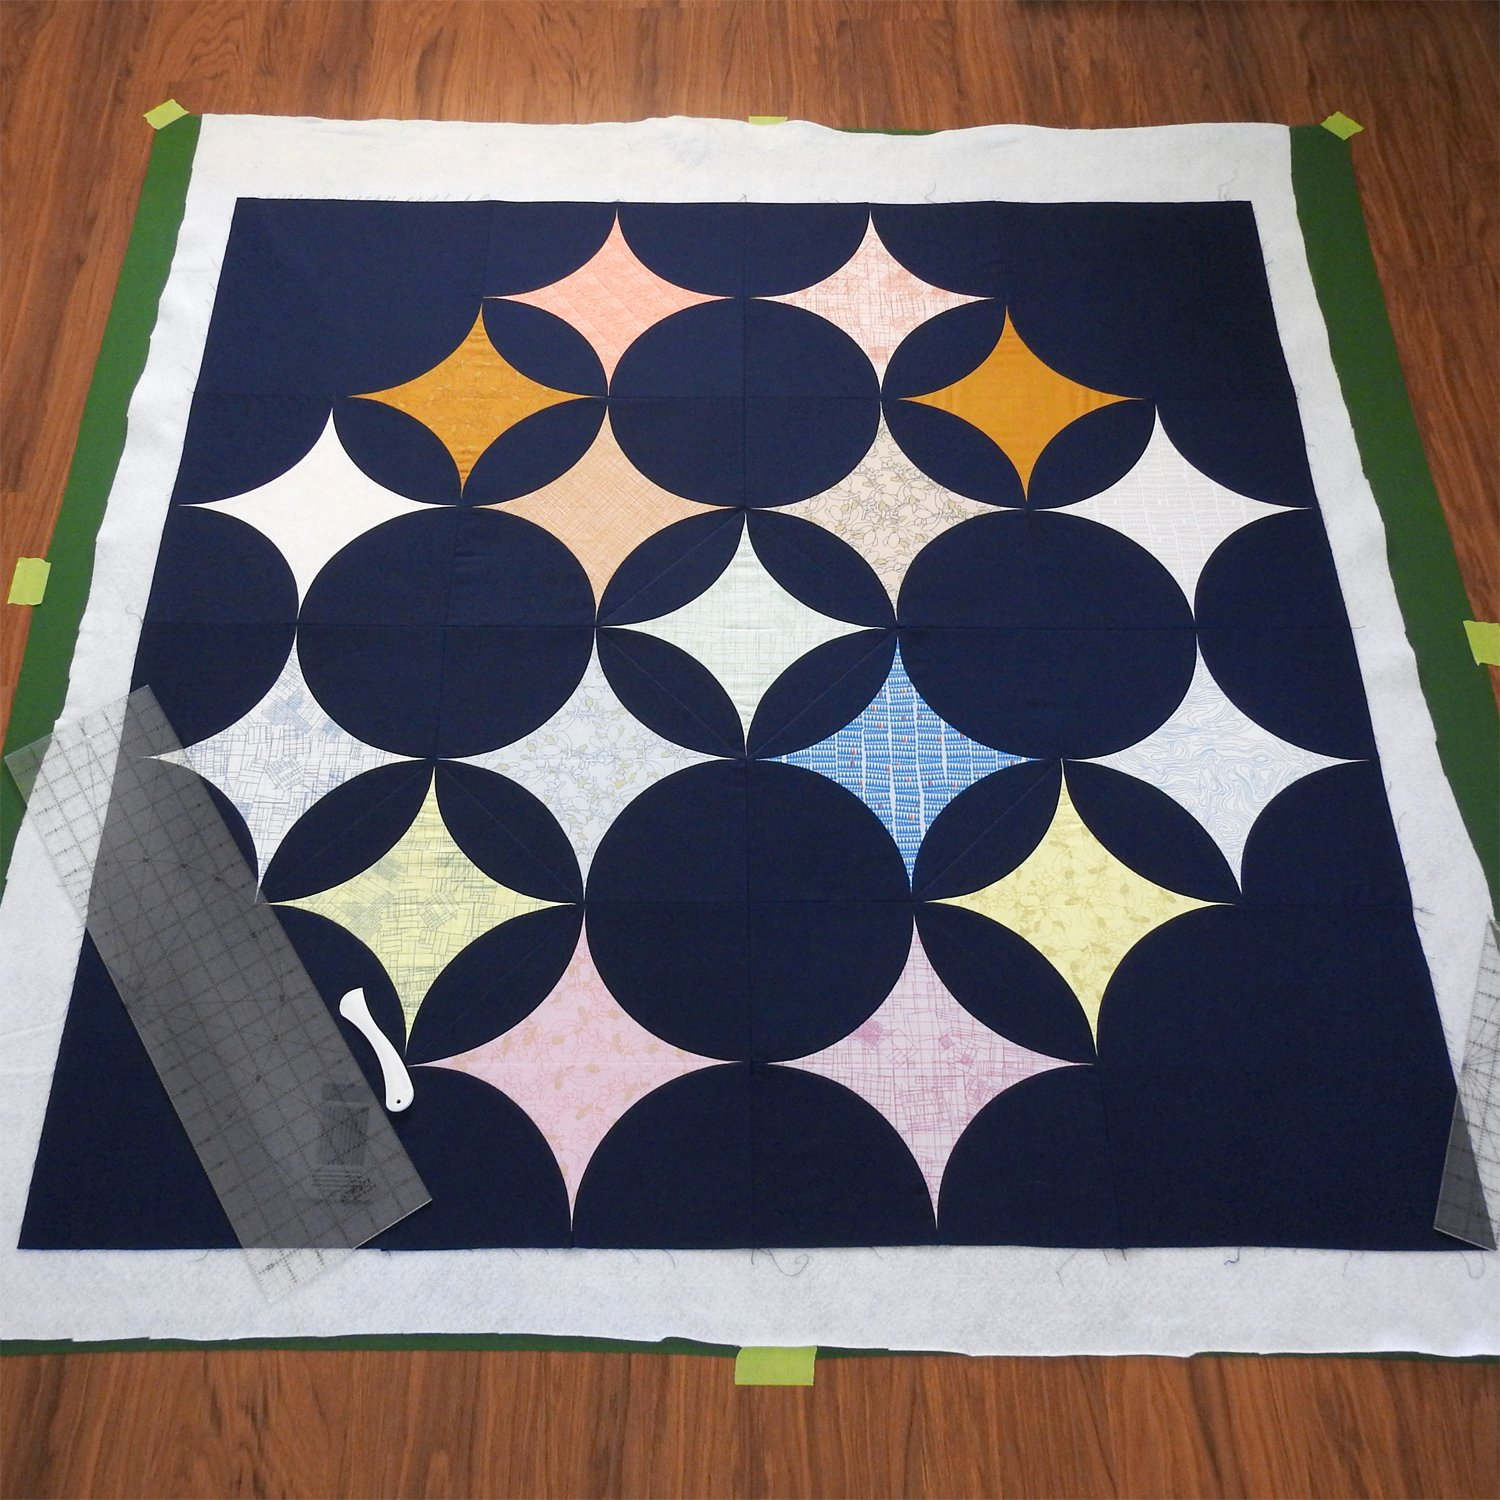 Sky Full of Stars - Mapping Out Quilting Reference Lines